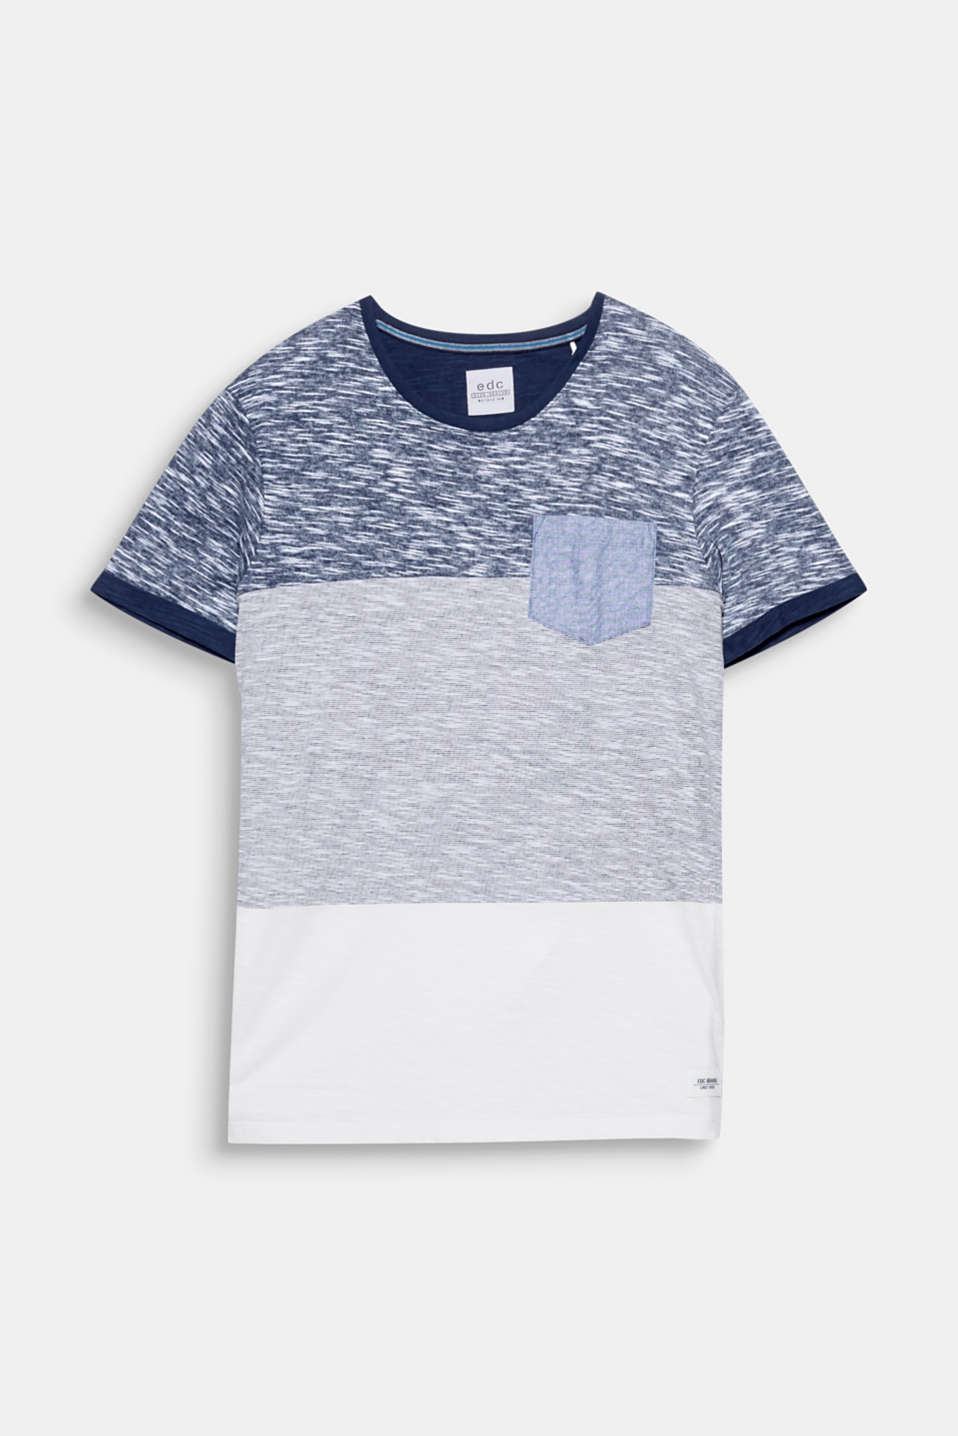 A casual basic that no wardrobe should be without: The exquisite mix of textures makes this T-shirt extremely eye-catching.